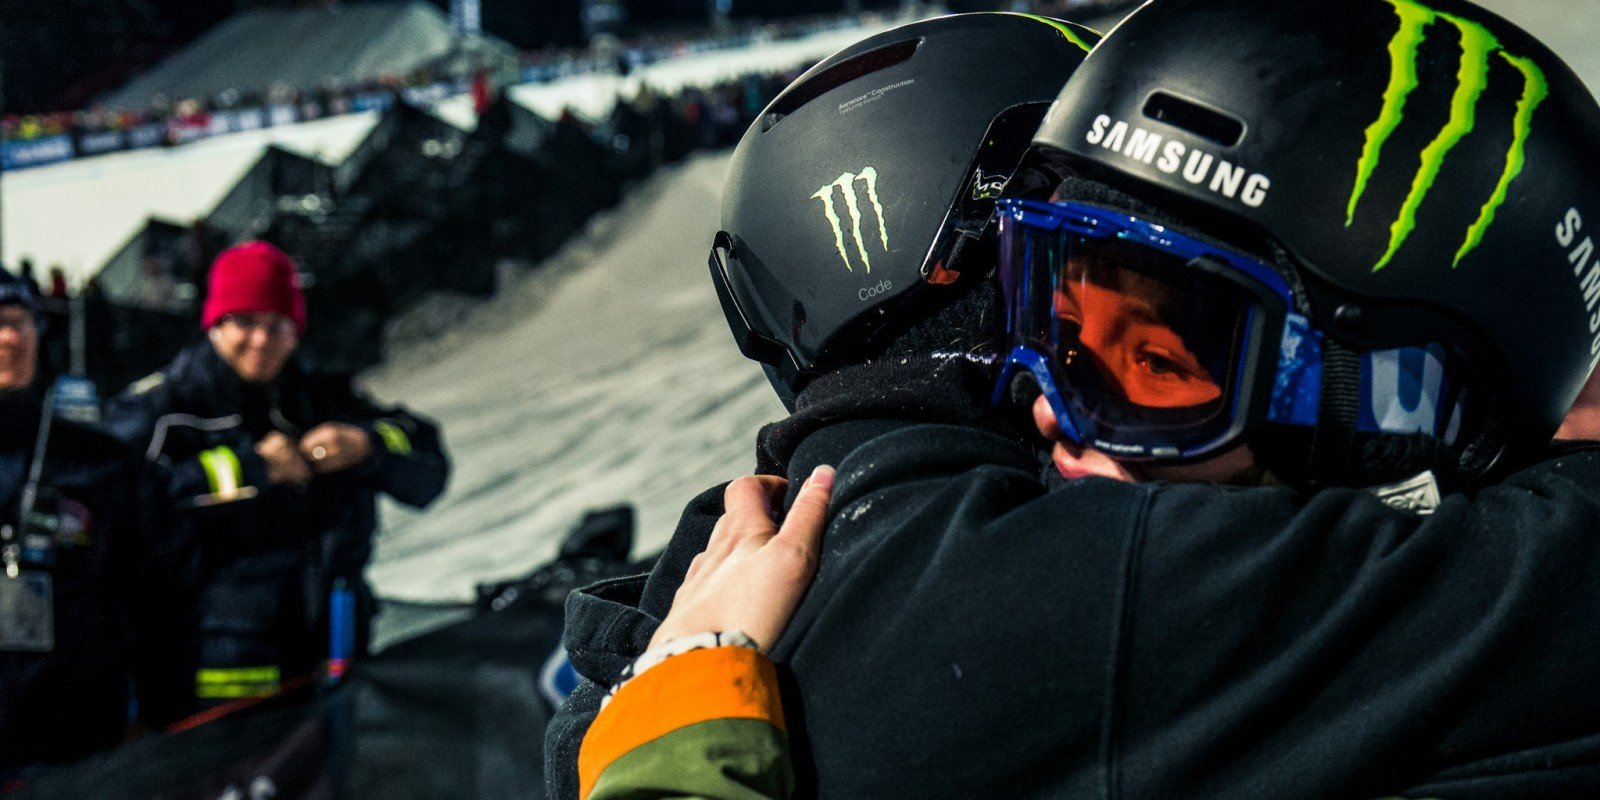 Monster athletes at the 2017 Winter X Games in Aspen, CO